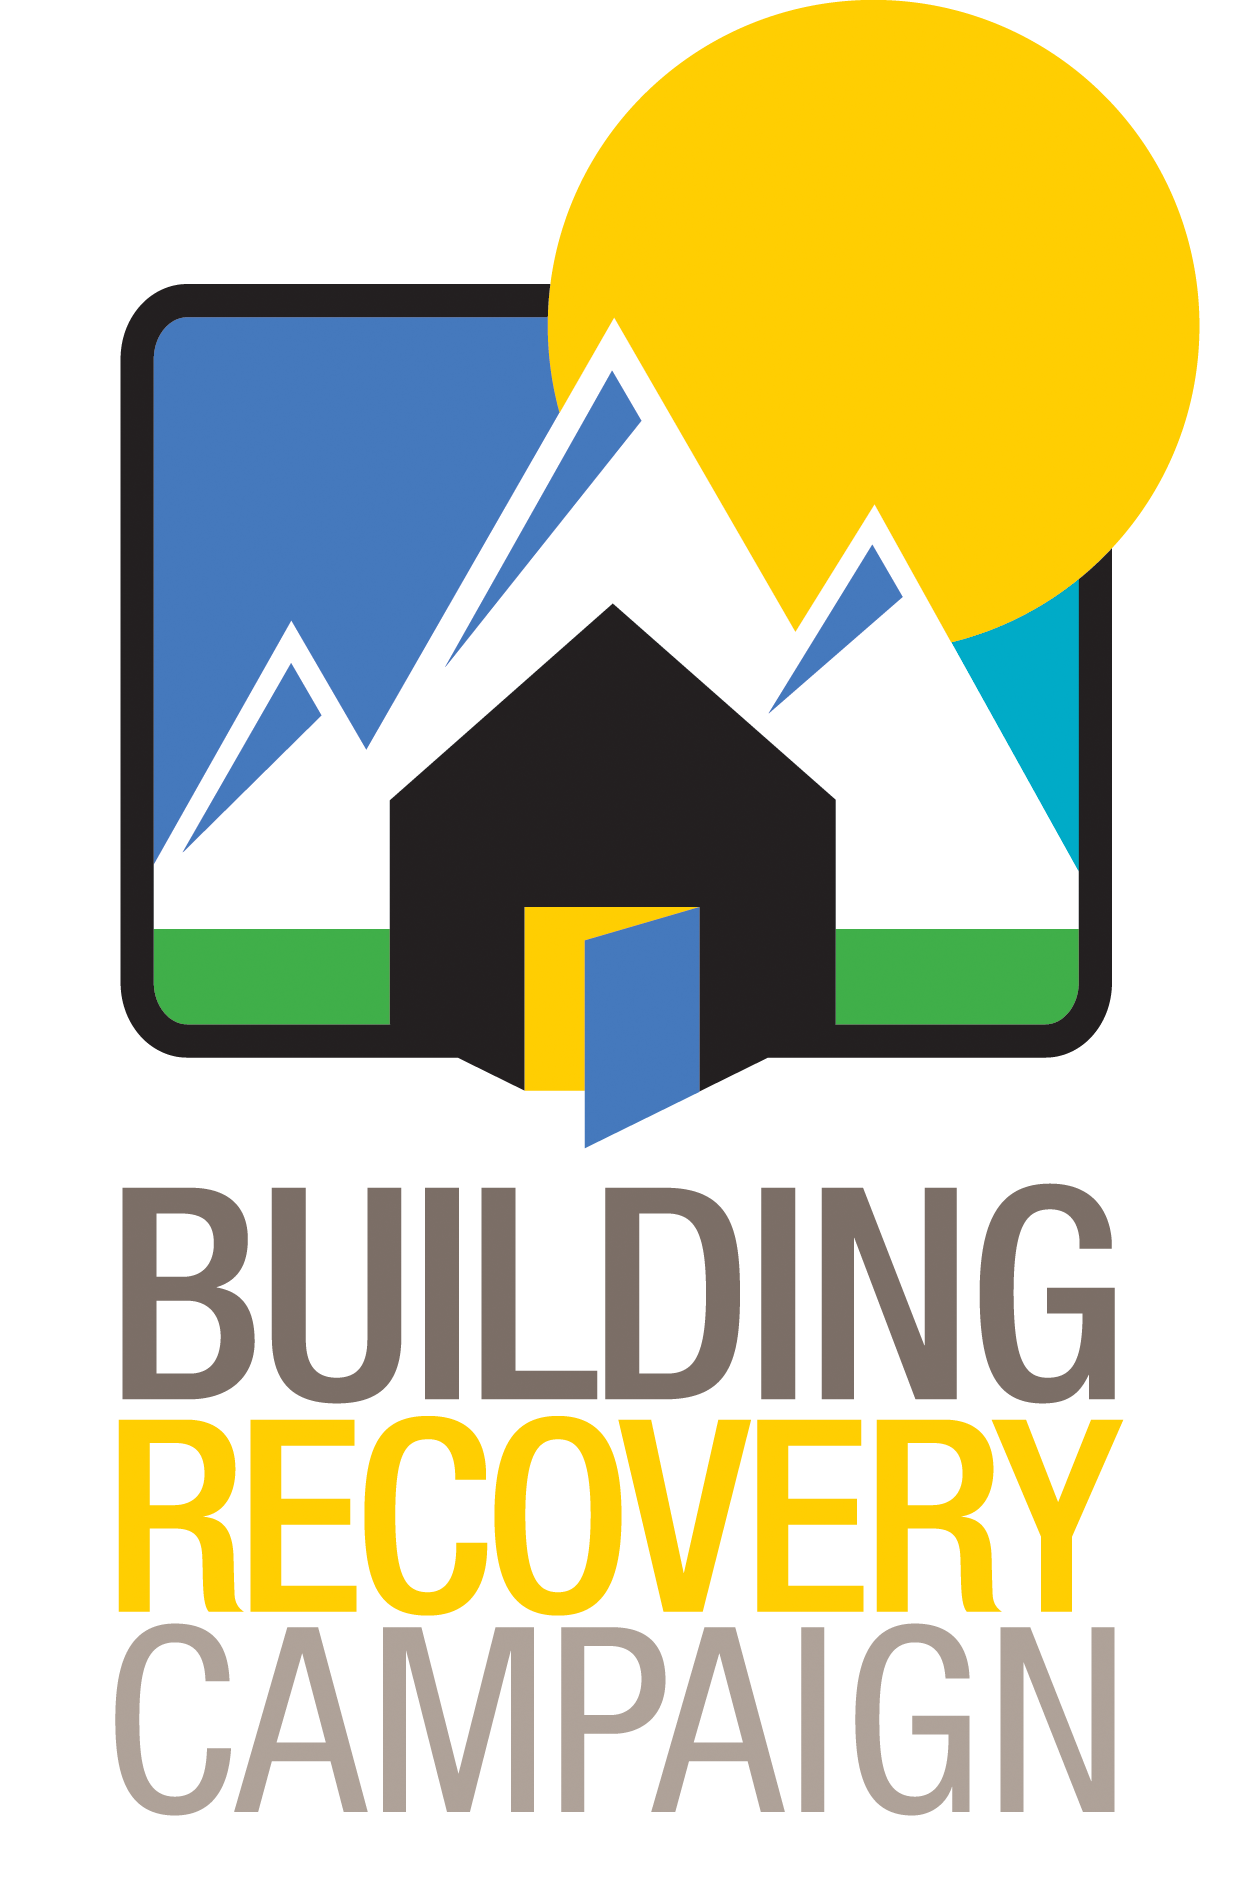 Building recovery mile high. Donation clipart homeless sign